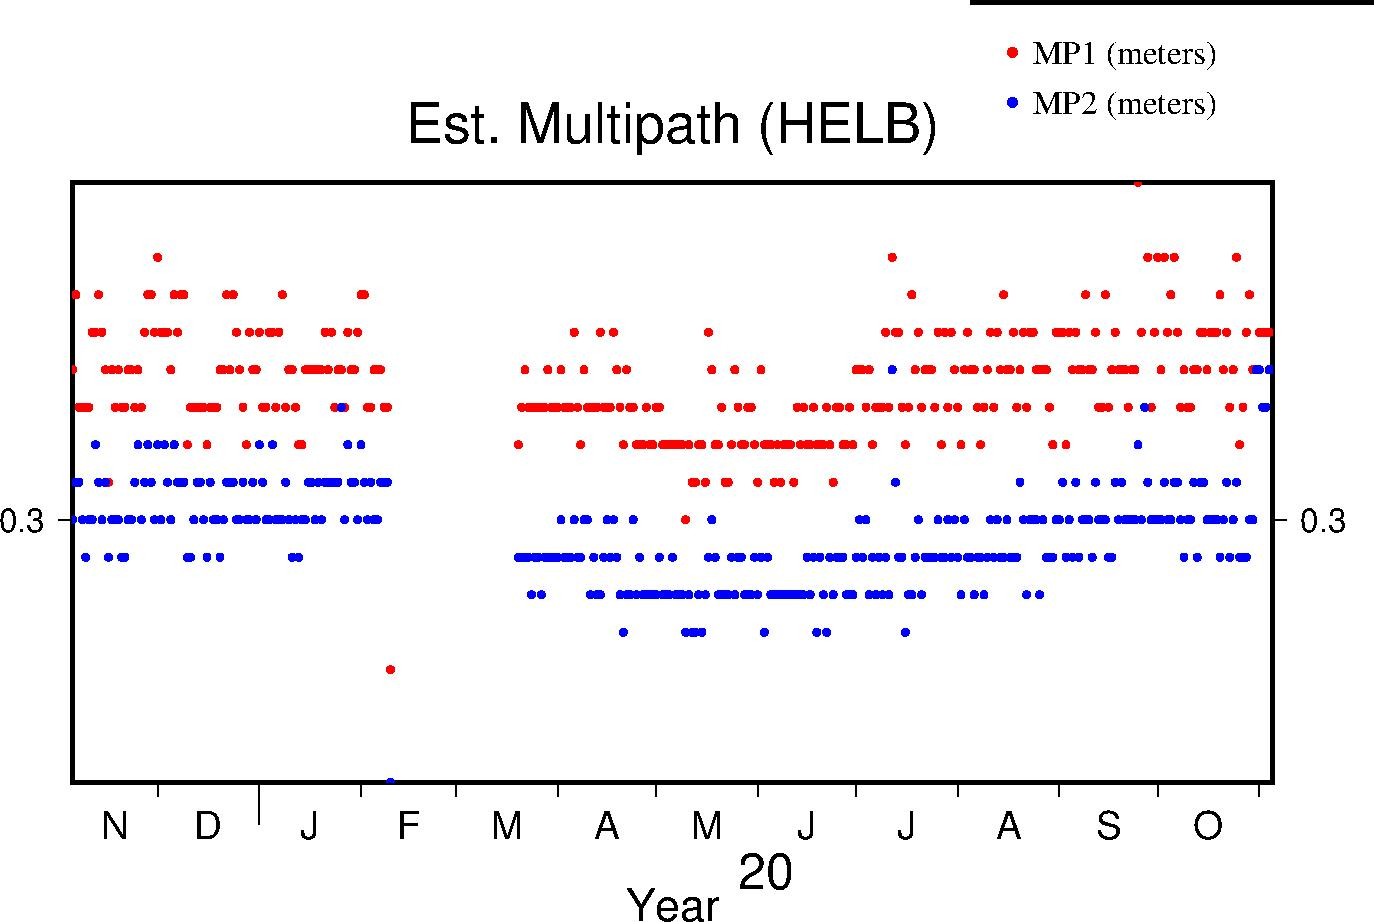 HELB multipath last year